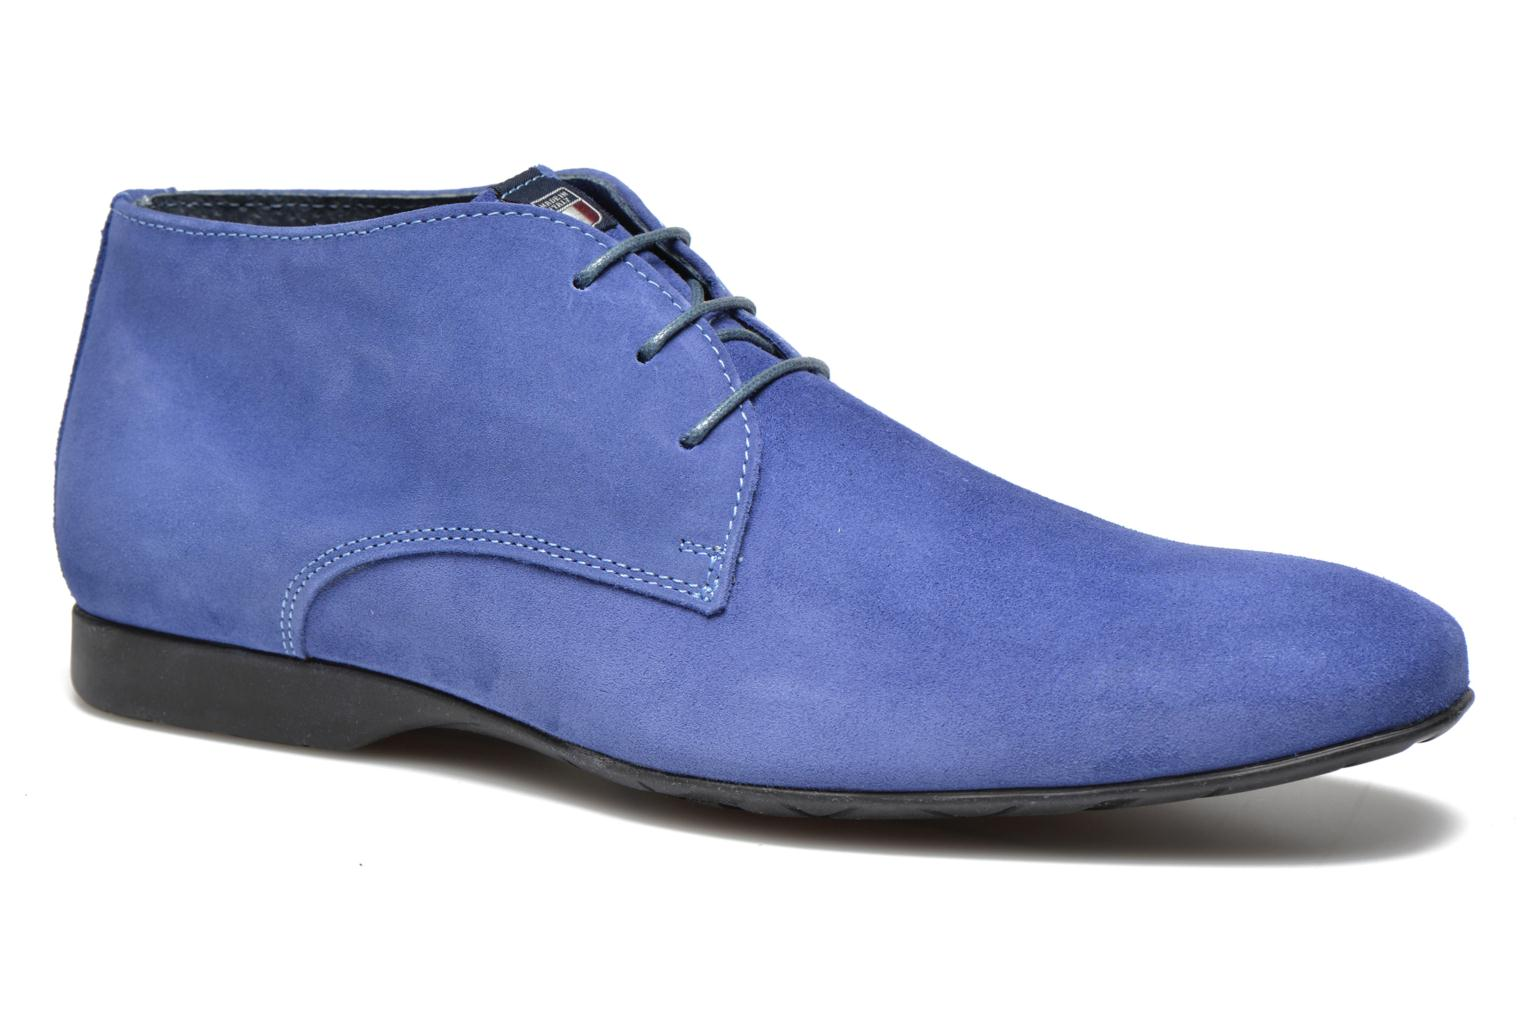 Marques Chaussure homme Marvin&Co homme Nathanael Camoscio cobalto